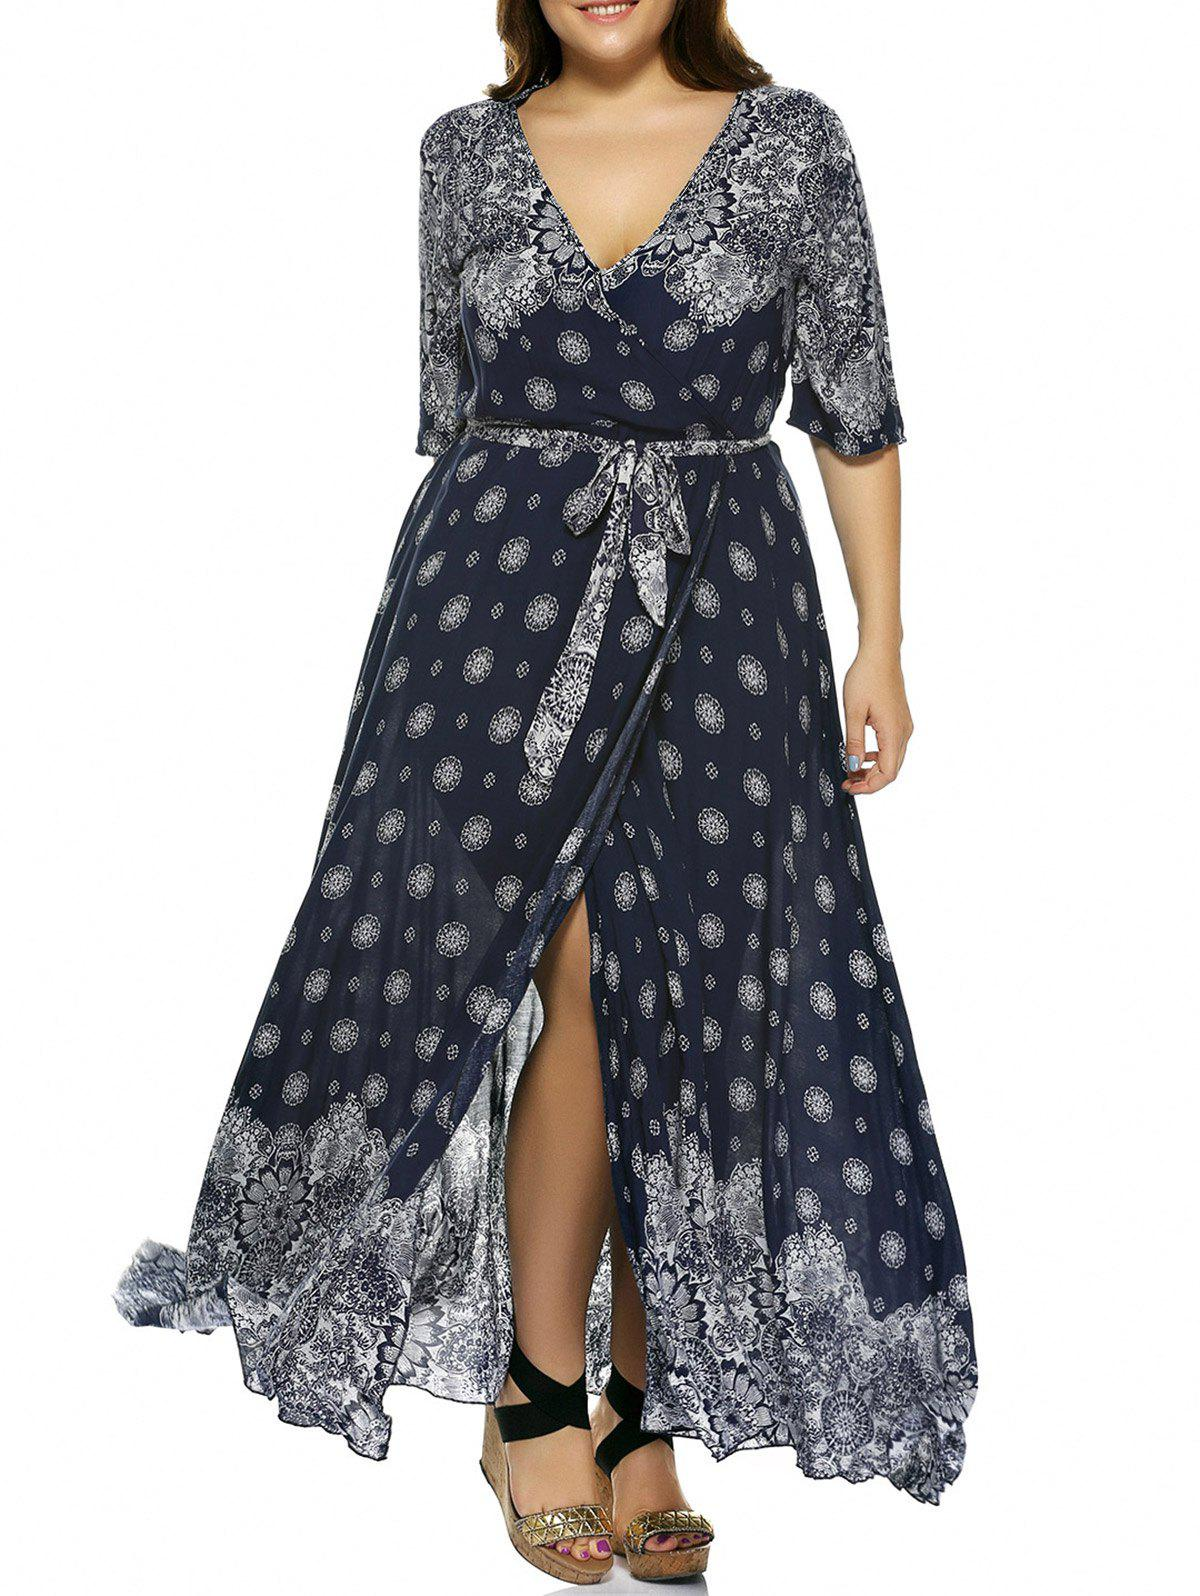 bc8c0794afa 51% OFF  Plus Size Boho Print Flowy Beach Wrap Maxi Dress